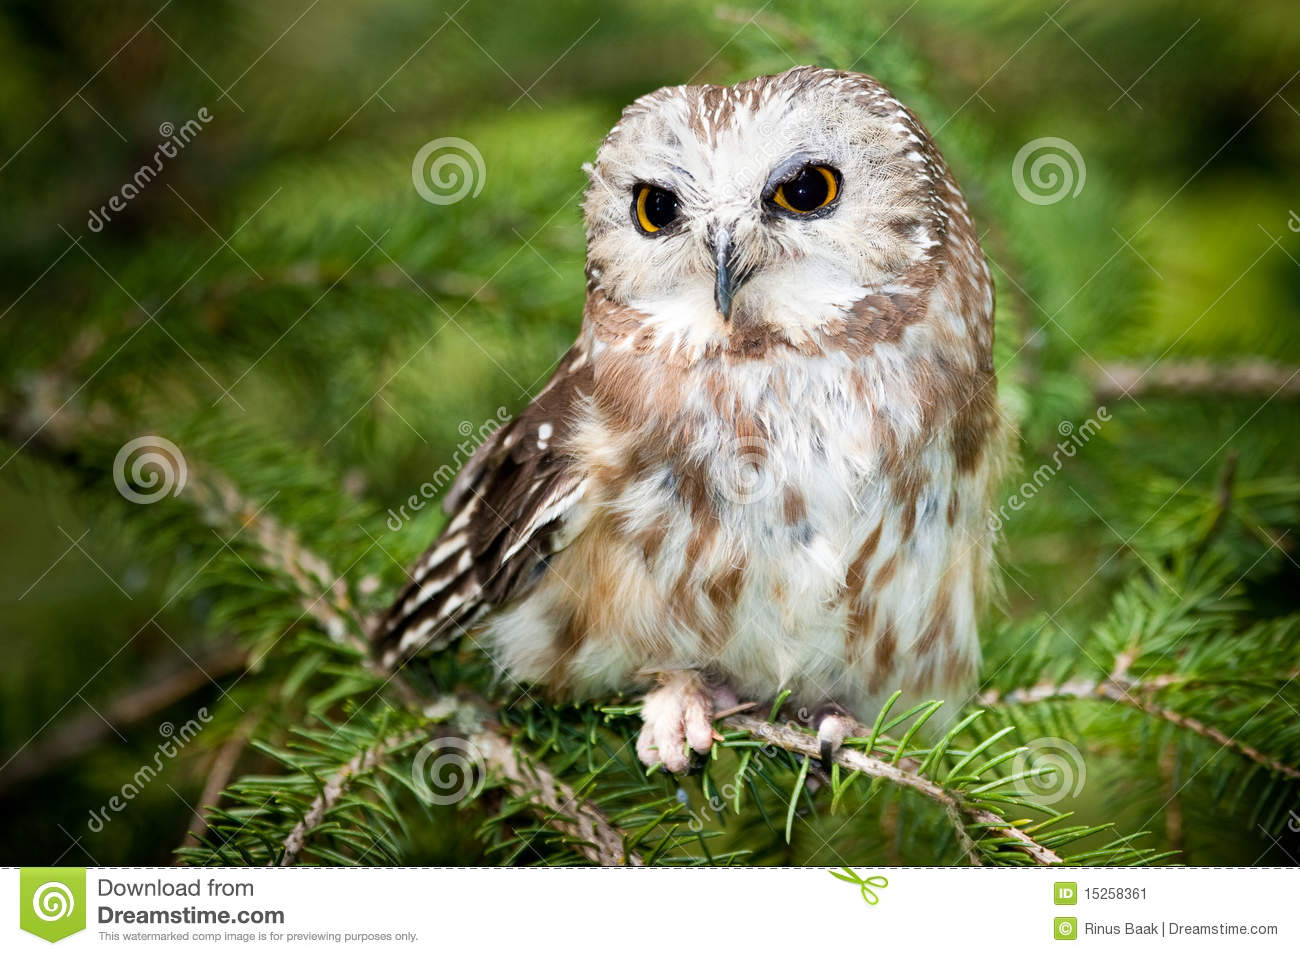 Saw Whet Owl clipart #8, Download drawings